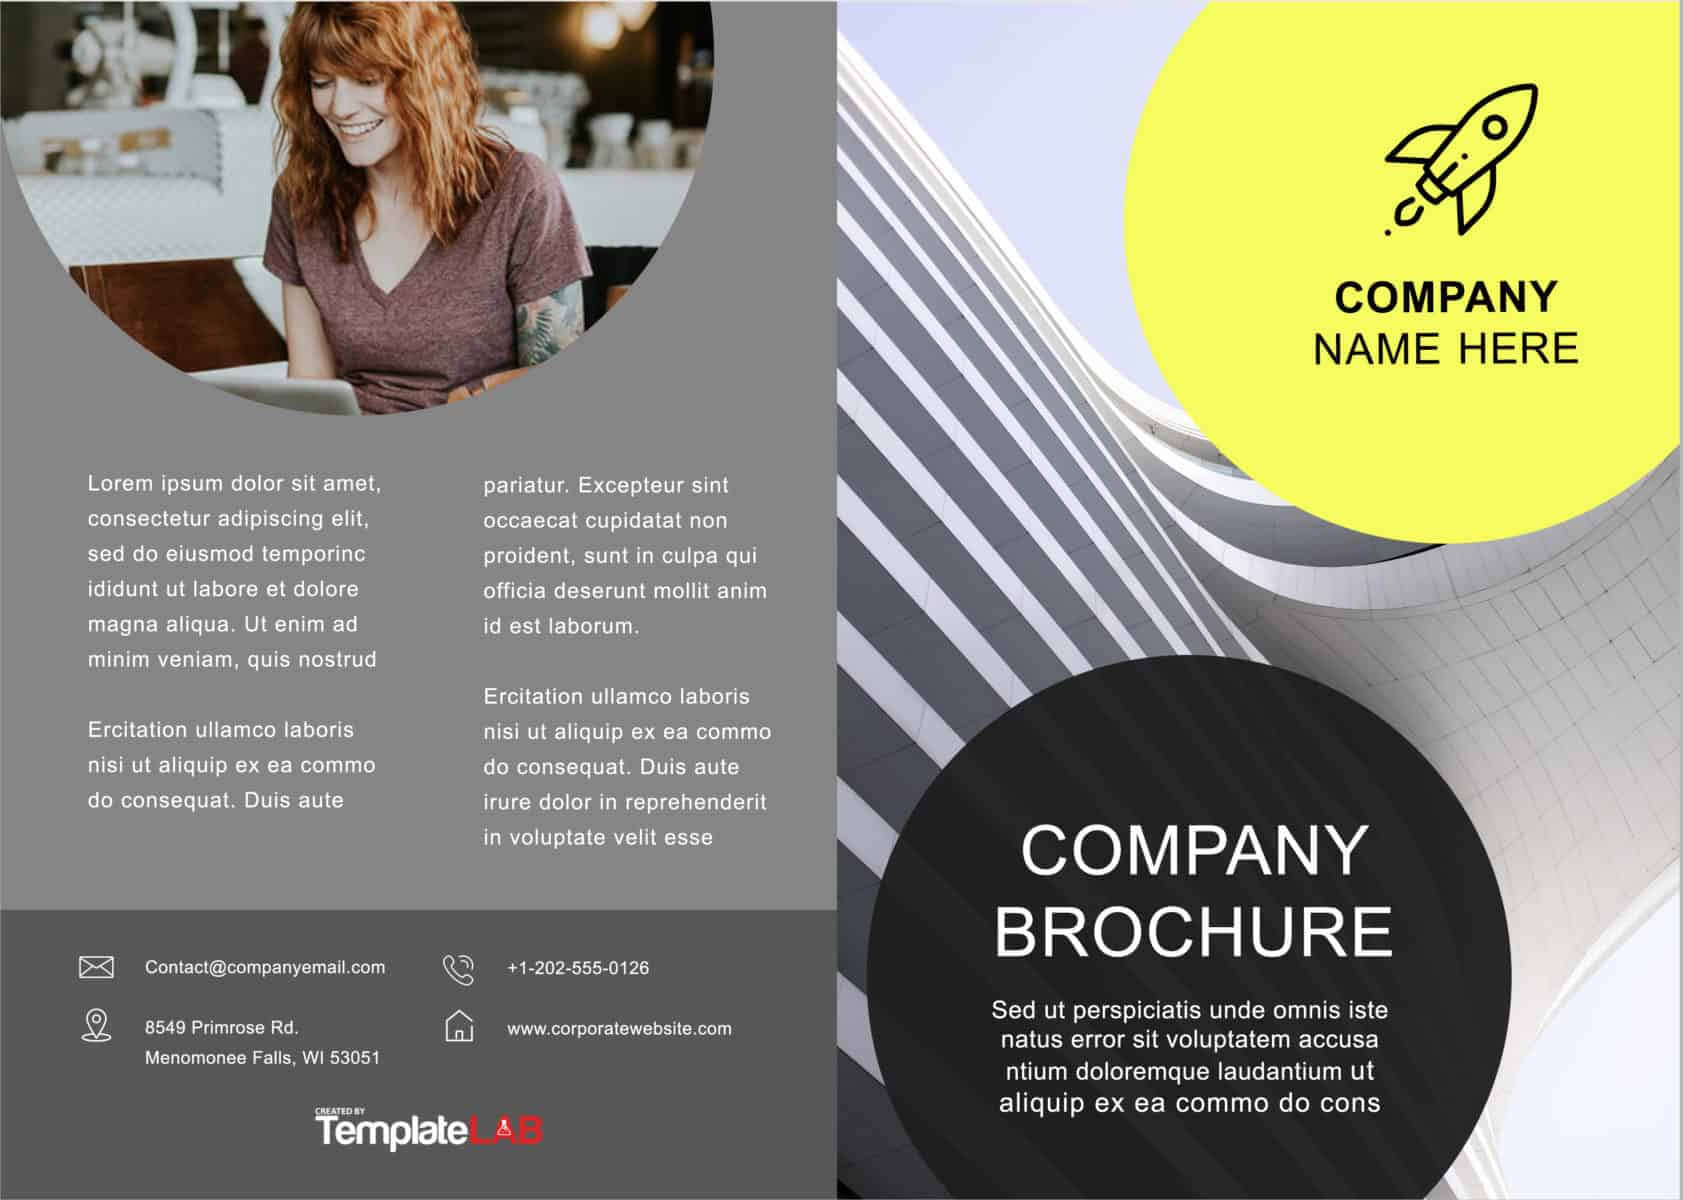 33 Free Brochure Templates (Word + Pdf) ᐅ Templatelab With Regard To Online Brochure Template Free